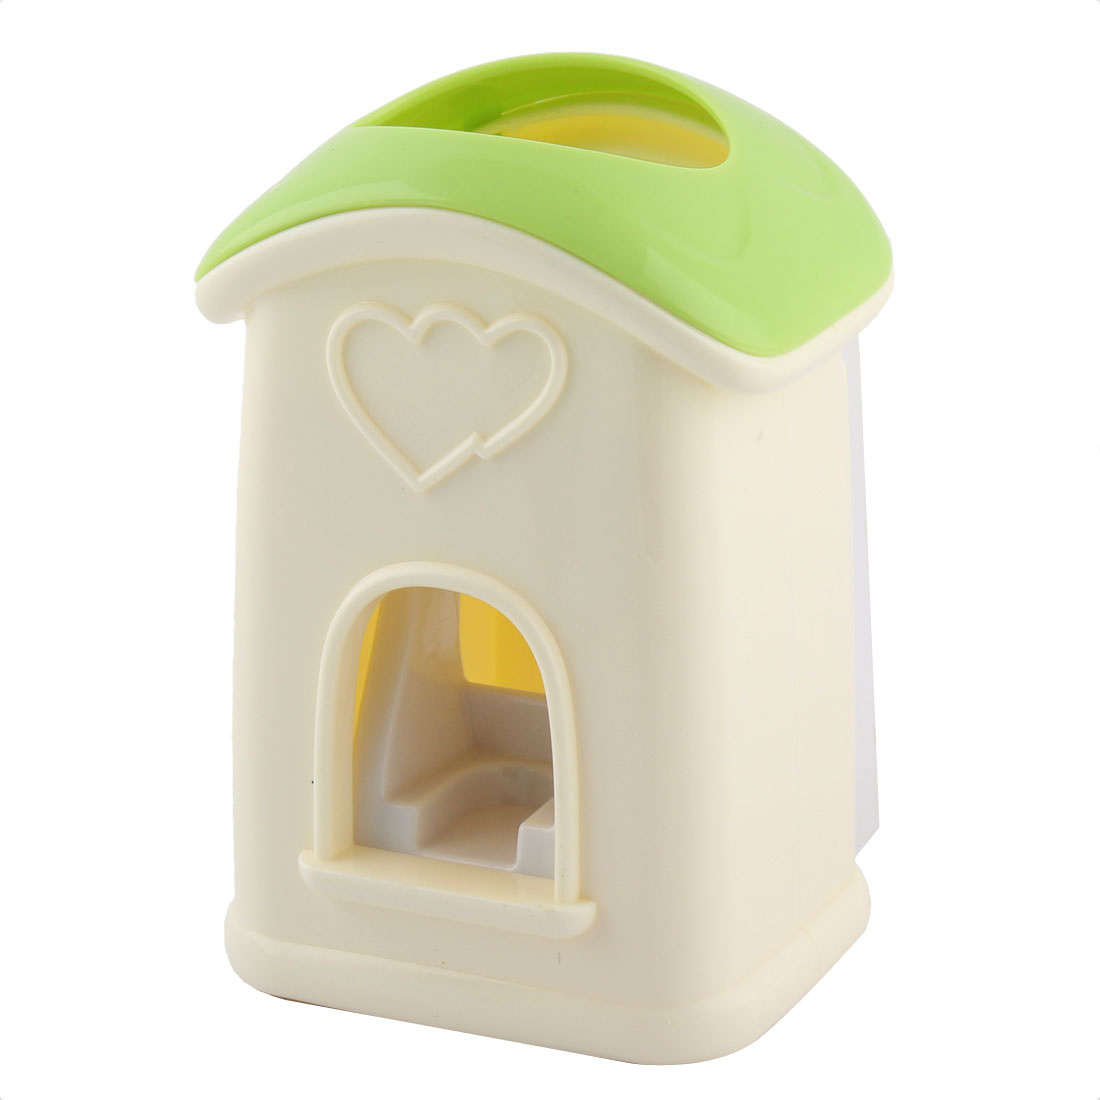 Cute House Shape Hands Free Automatic Toothpaste Dispenser Squeezer Holder Green